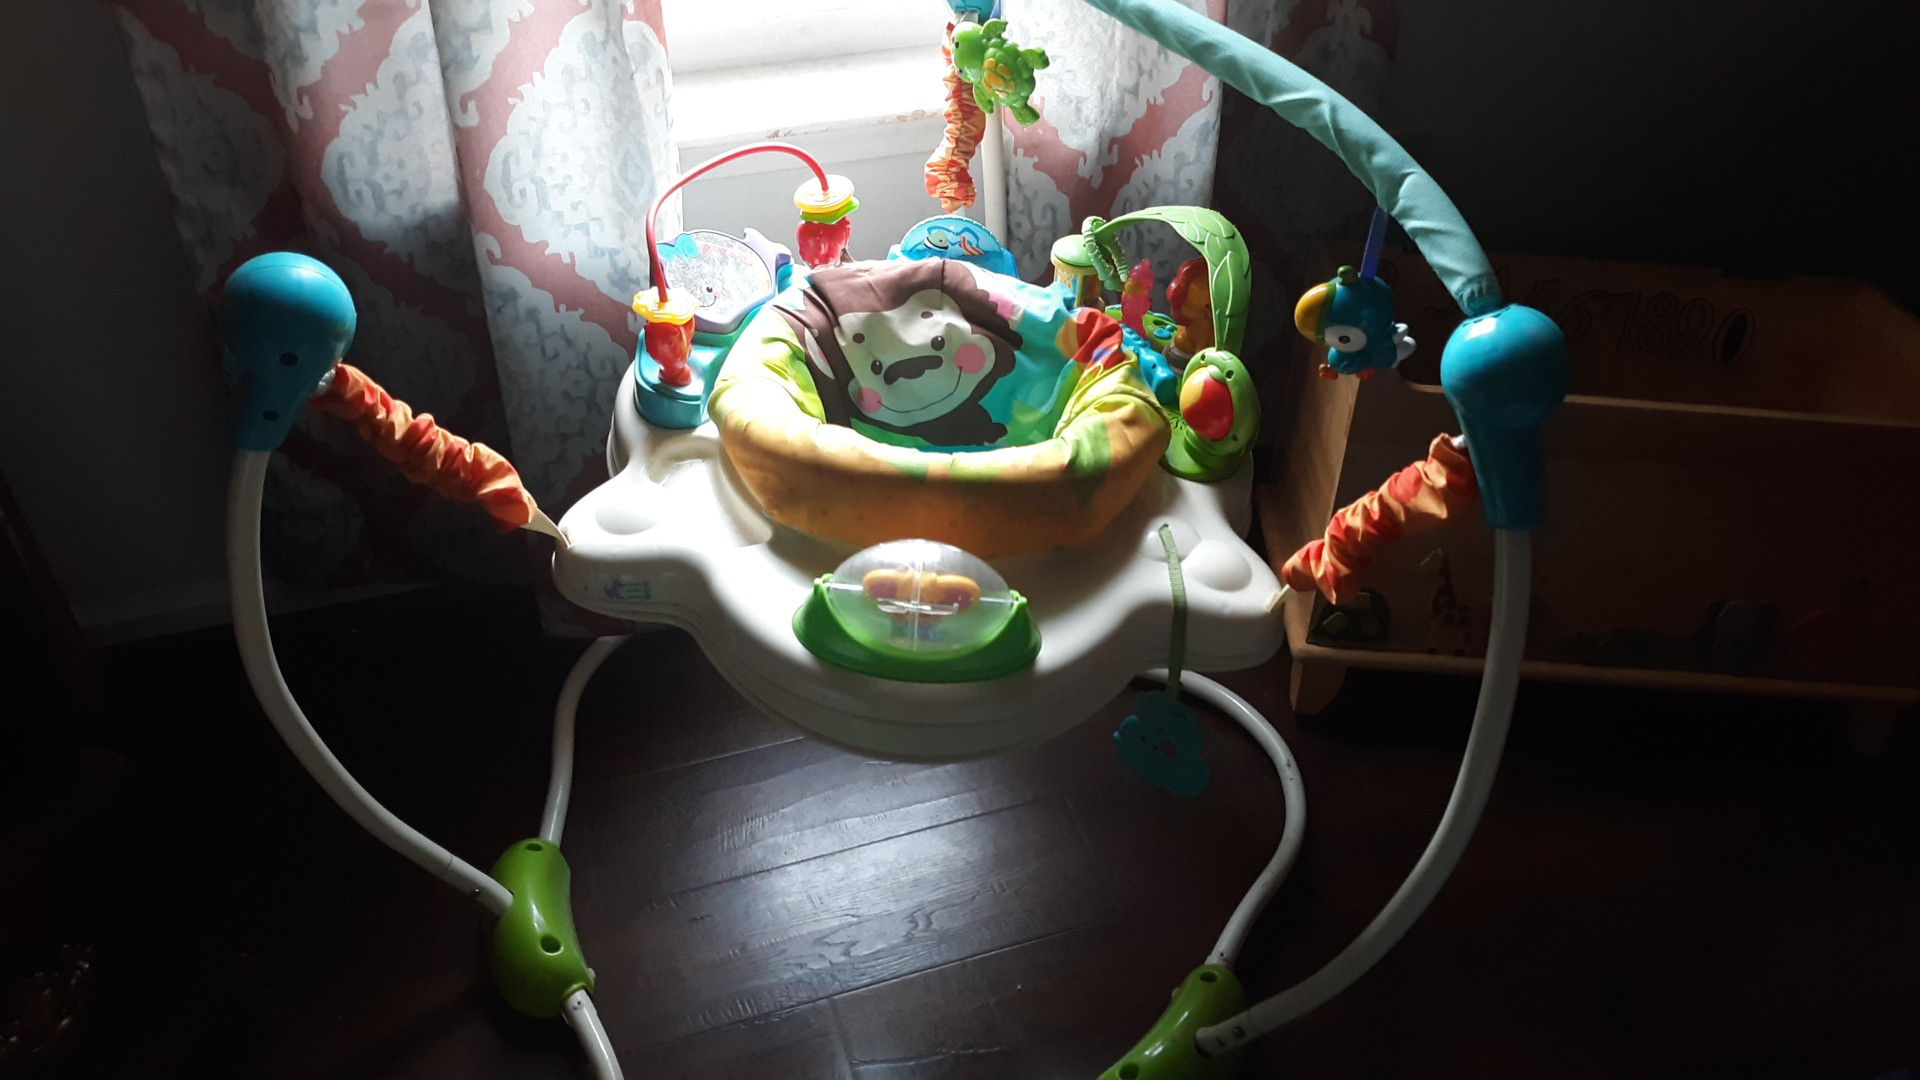 Fisher-Price Bouncy chair